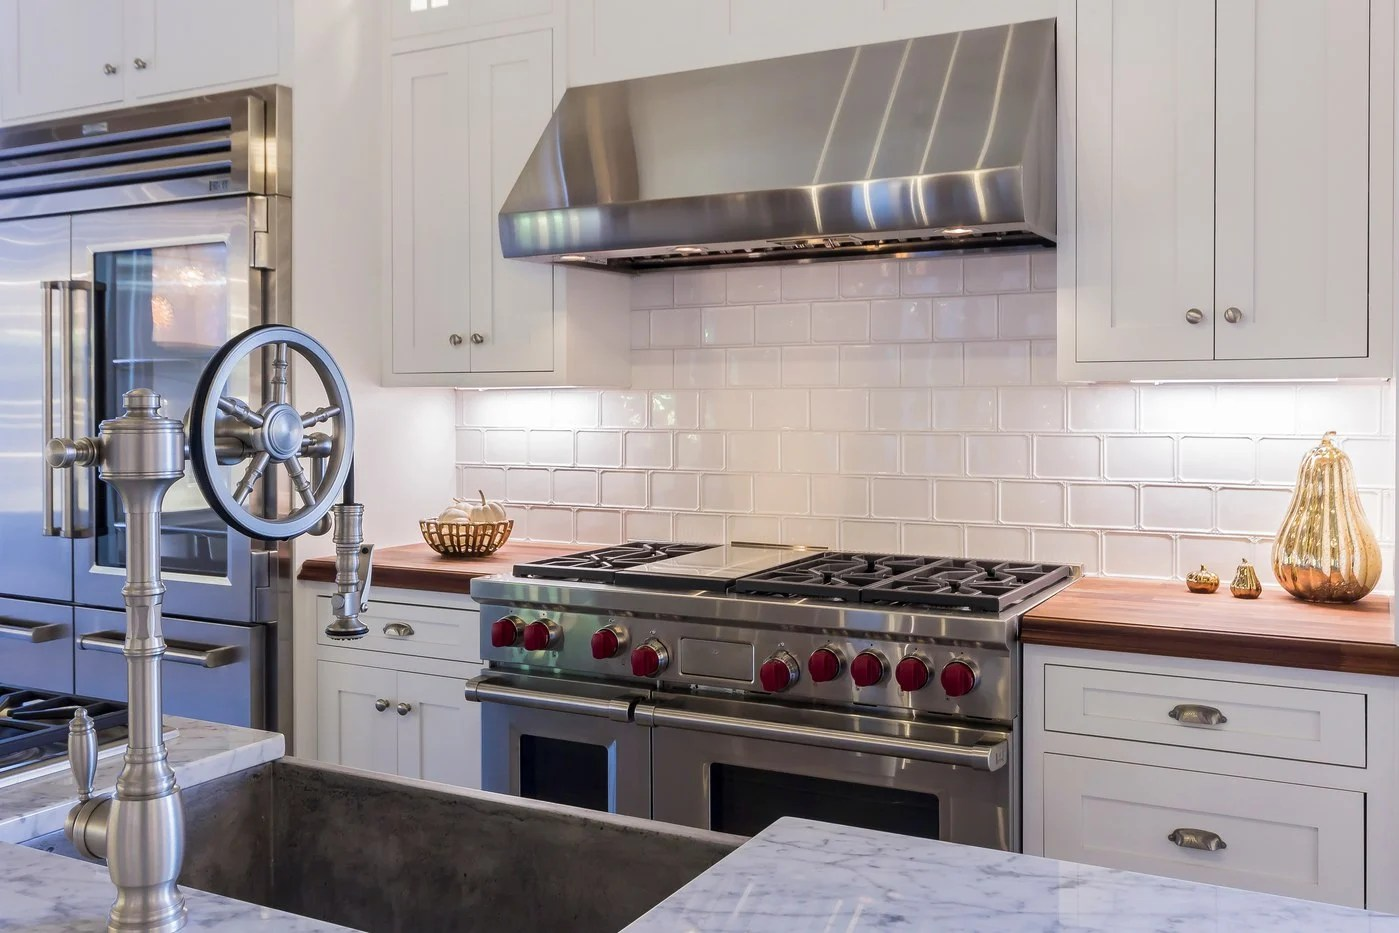 kitchen appliances brands cabinets las vegas the 6 best luxury appliance reviews ratings prices sub zero wolf